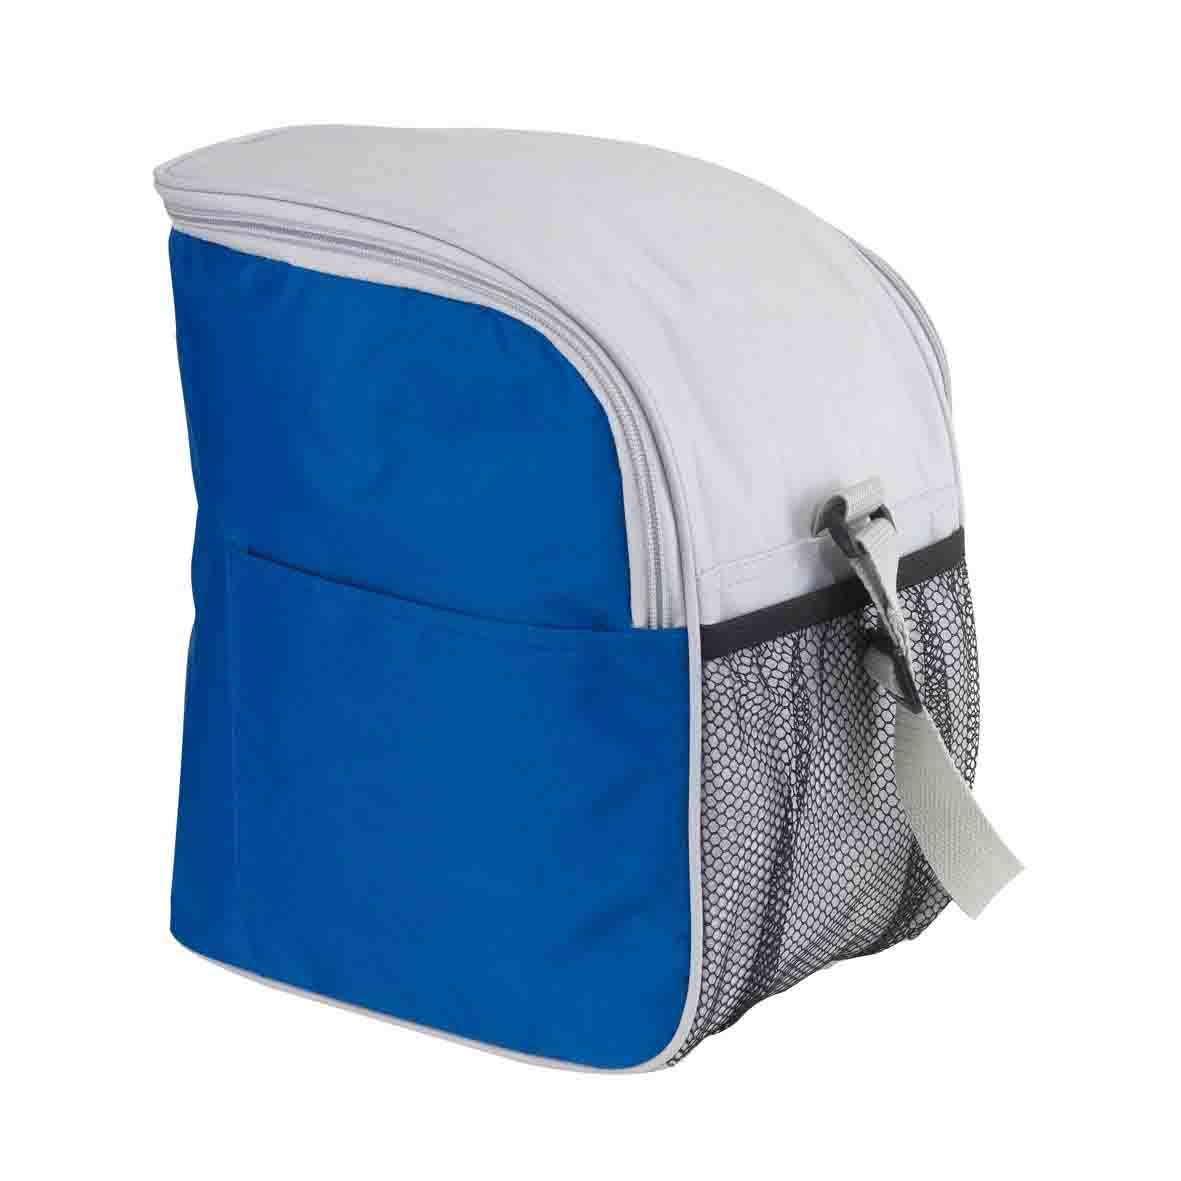 Cooler bag 'Glacial' - Blue ins-0801140